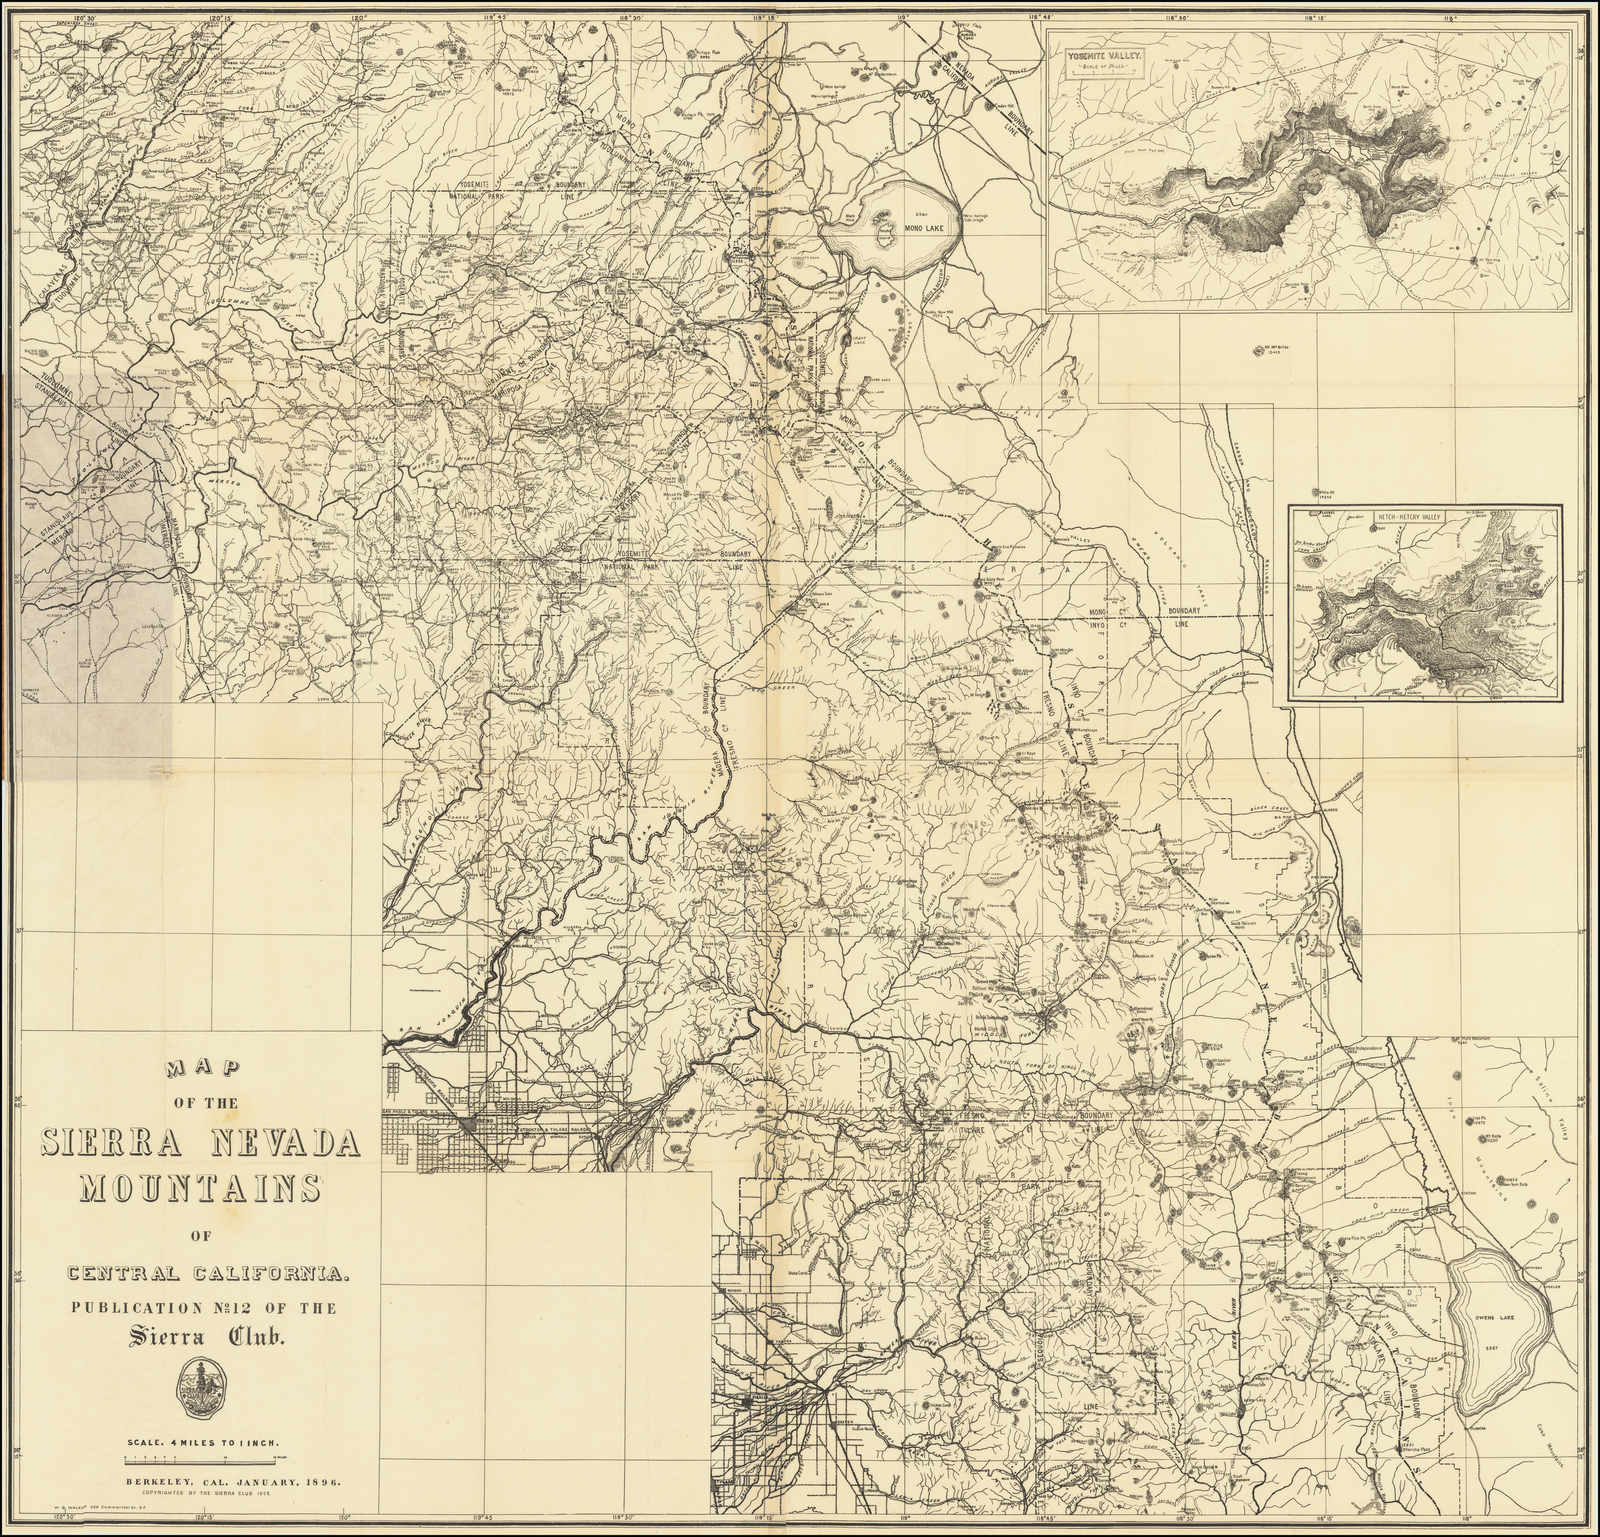 Picture of: Map Of The Sierra Nevada Mountains Of Central California Publication No 12 Of The Sierra Club January 1896 Barry Lawrence Ruderman Antique Maps Inc